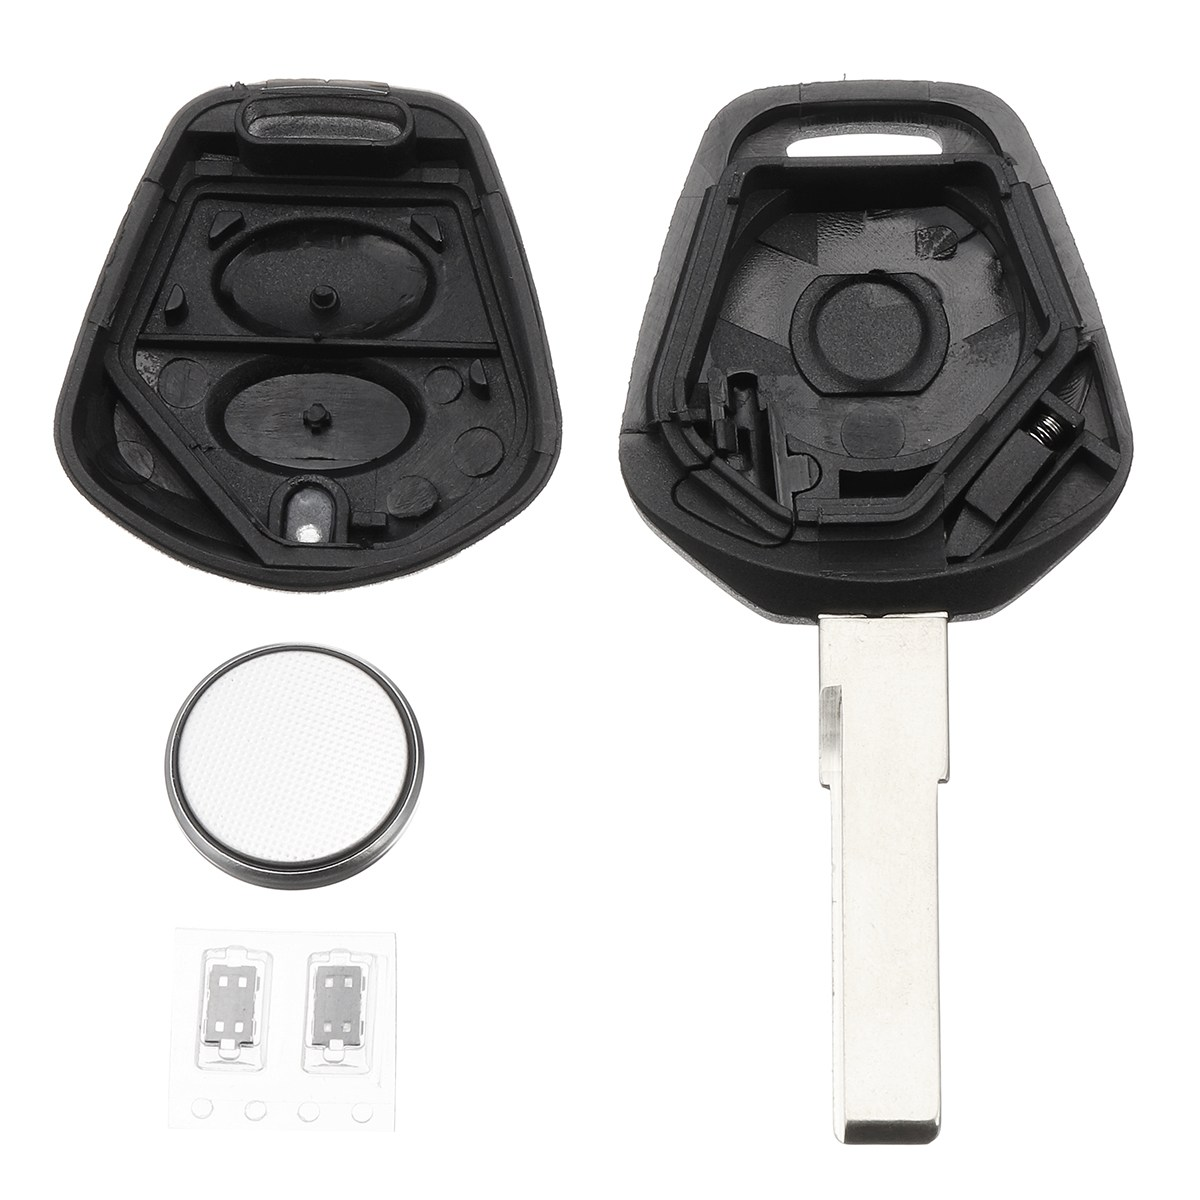 2 Buttons Lock Unlock Car Remote Fob Key Case Shell With CR2032 Battery For Porsche 911 996 Boxster S 986